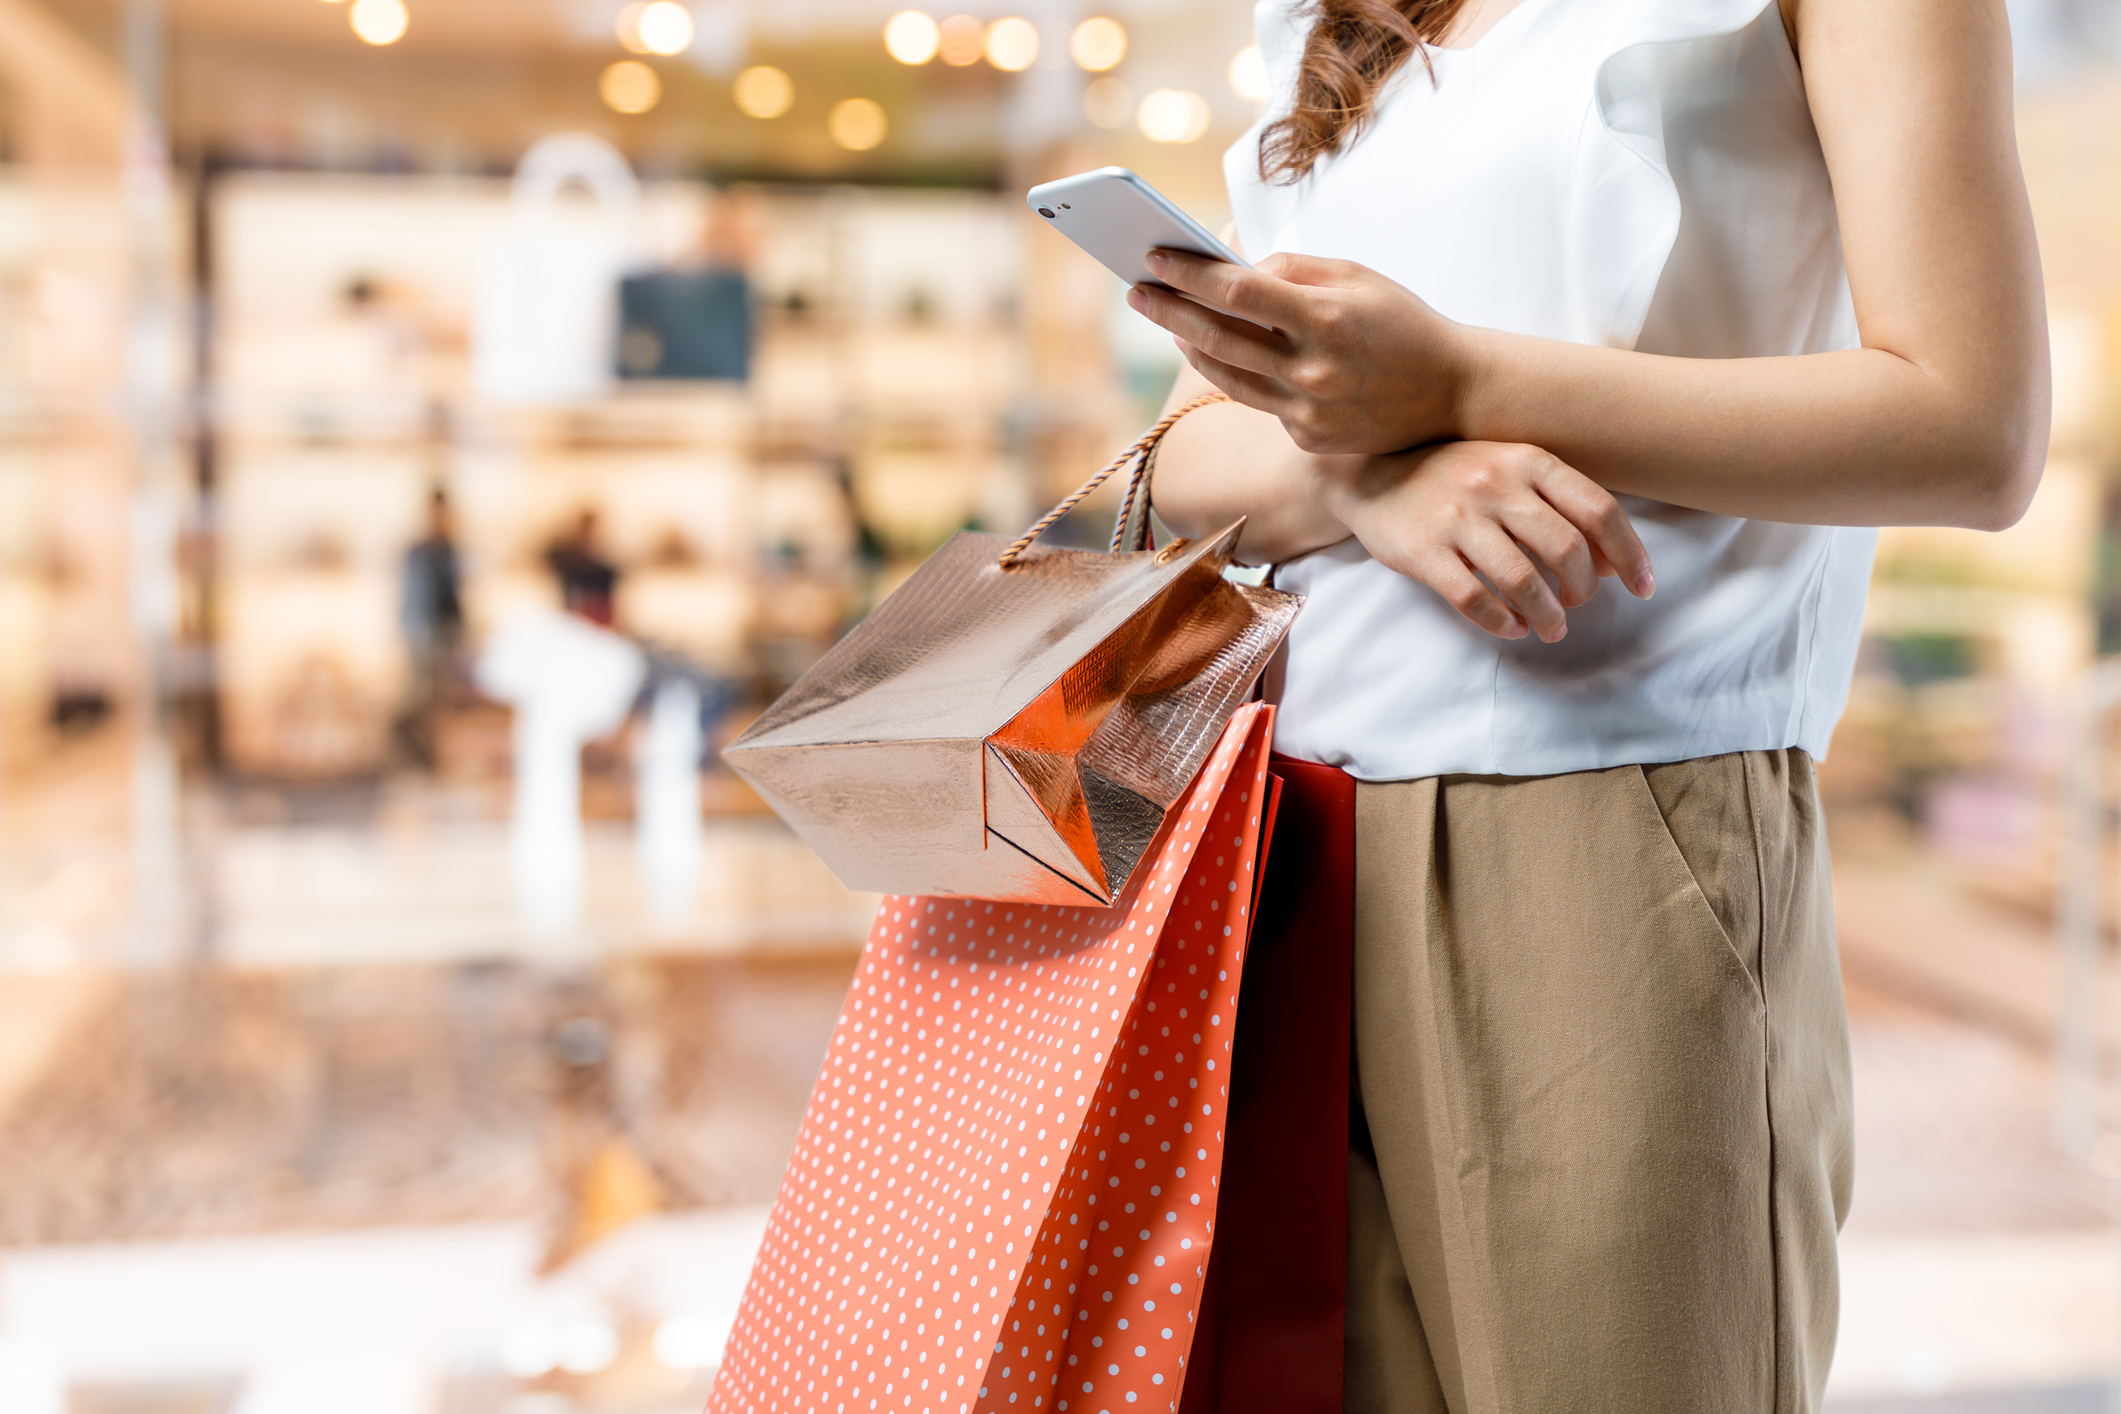 A woman holding shopping bags and looking at her phone.